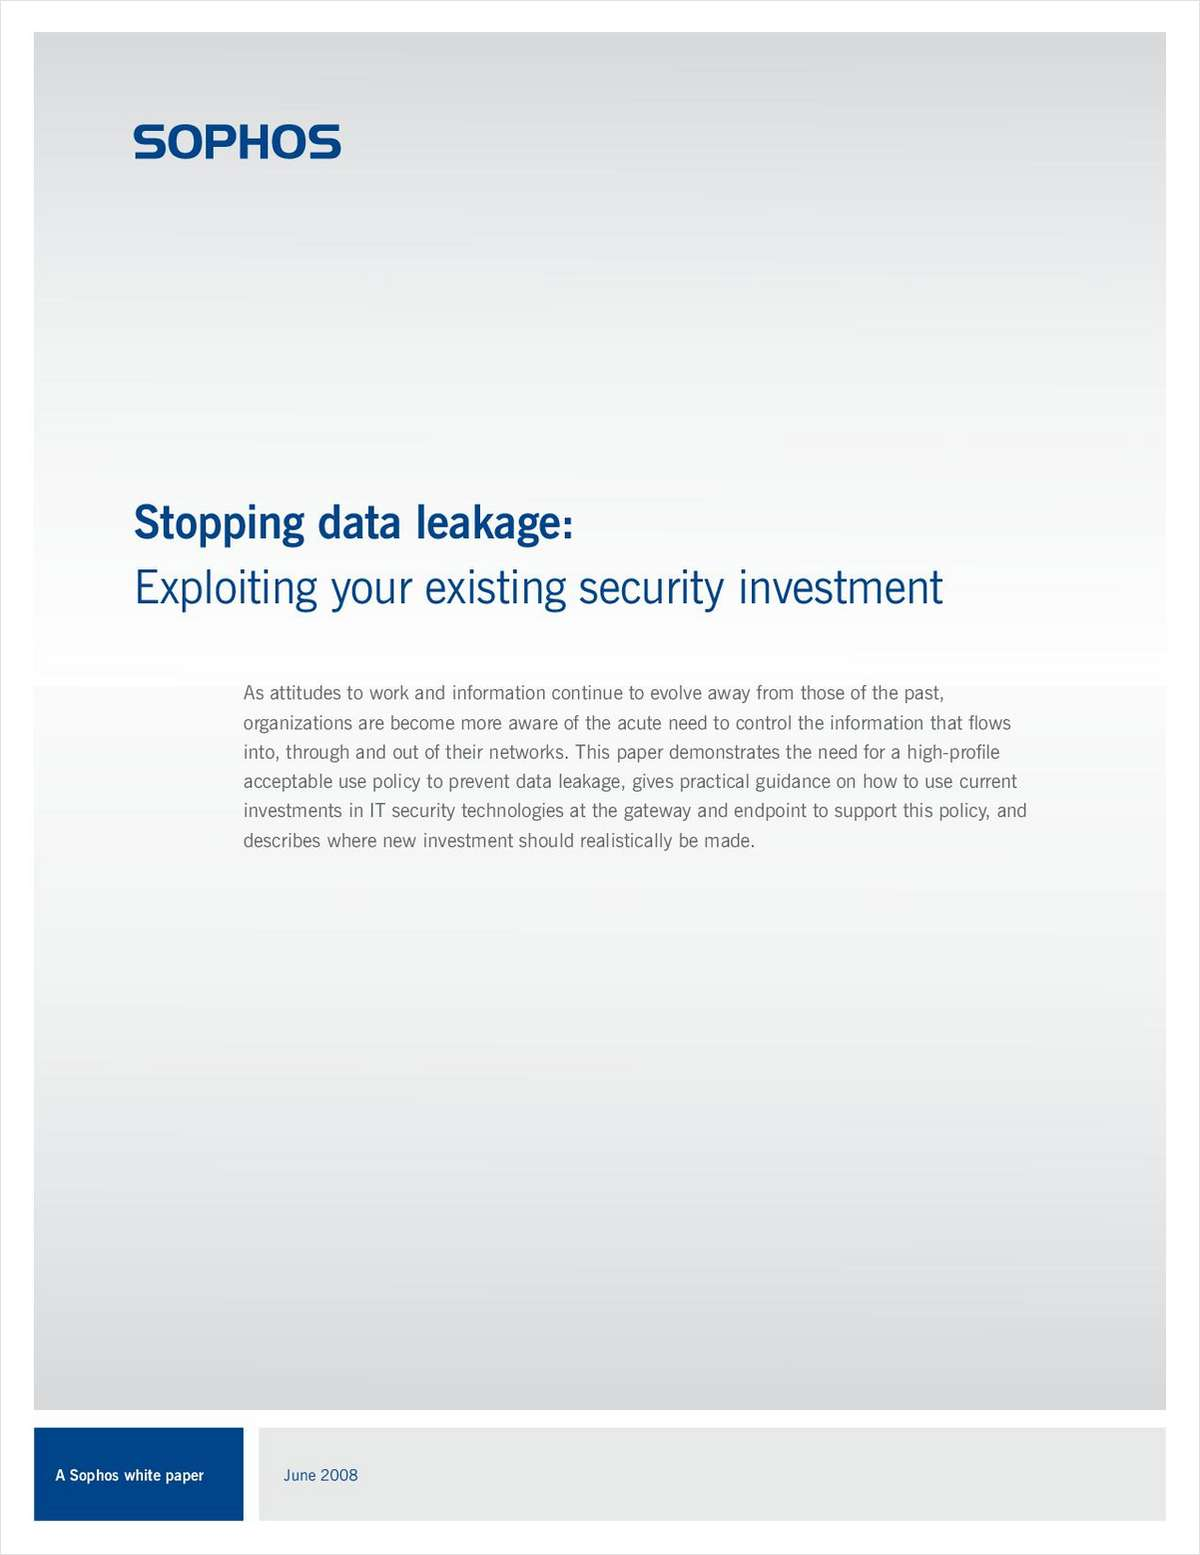 Stopping Data Leakage: Exploiting Your Existing Security Investment